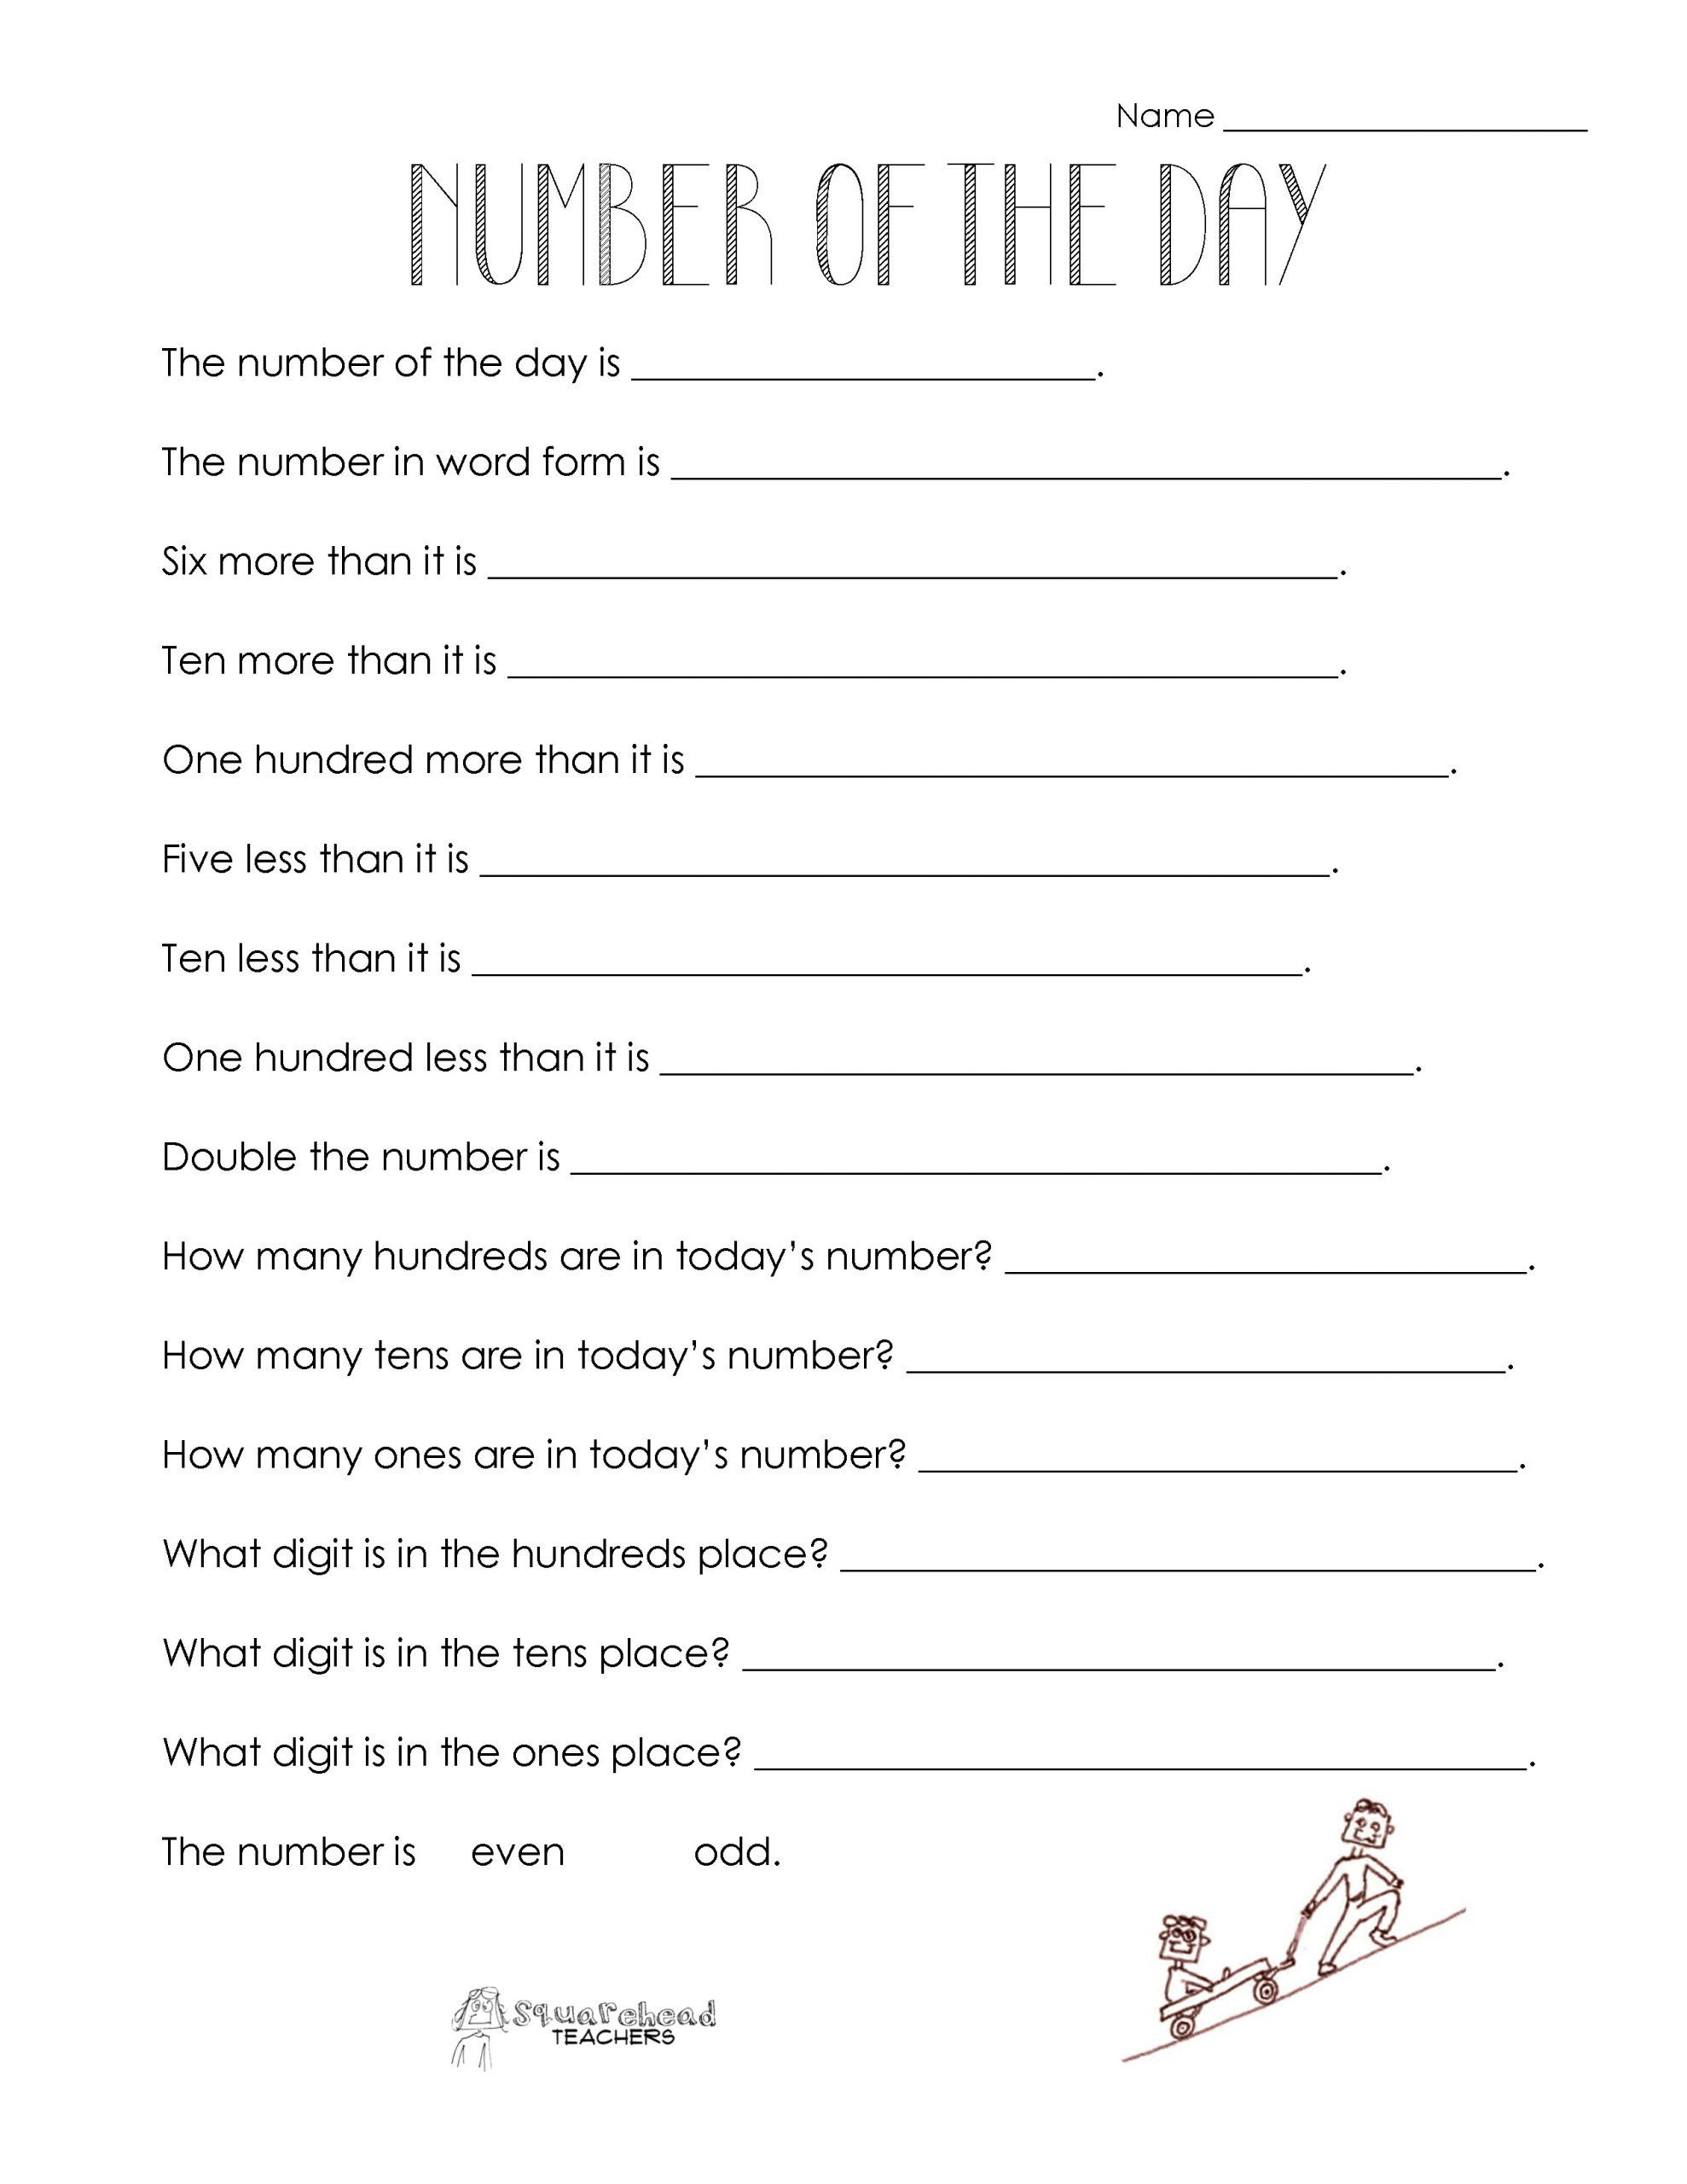 small resolution of Patterns Worksheets 4th Grade Number Of the Day Worksheet Collection   Sequencing  worksheets